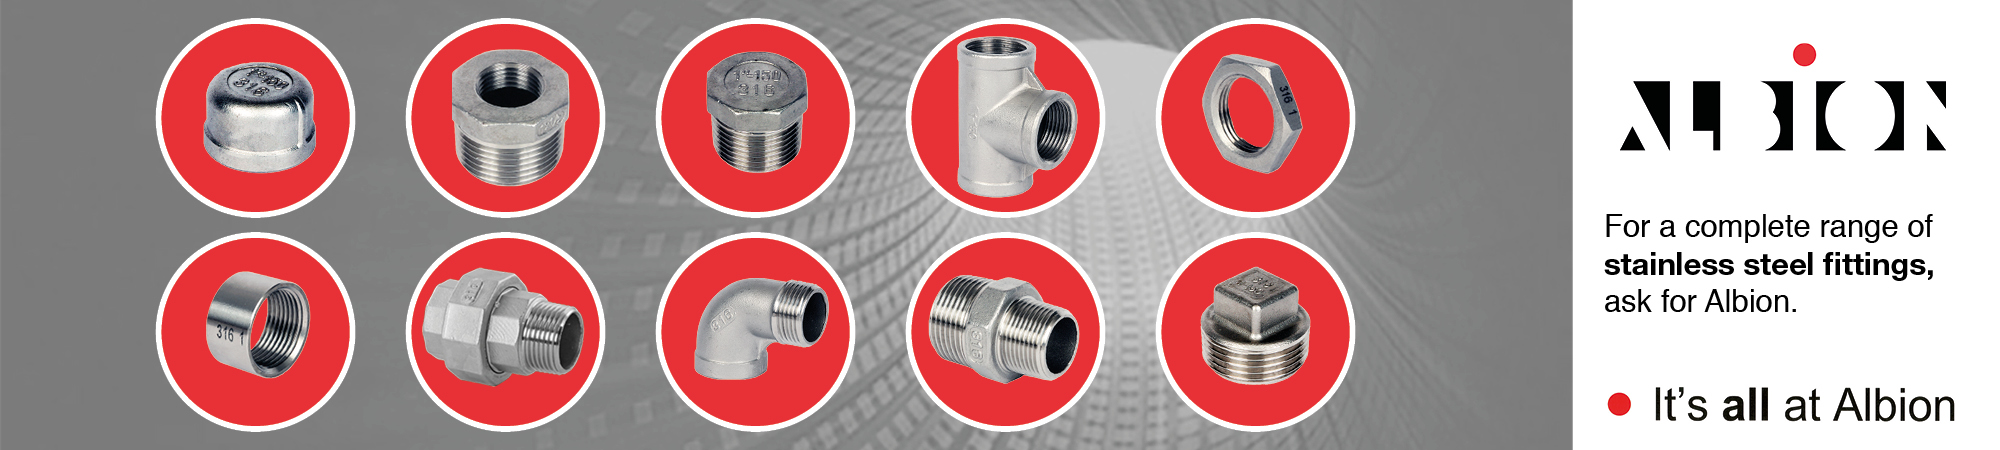 Albion Stainless Steel Fittings